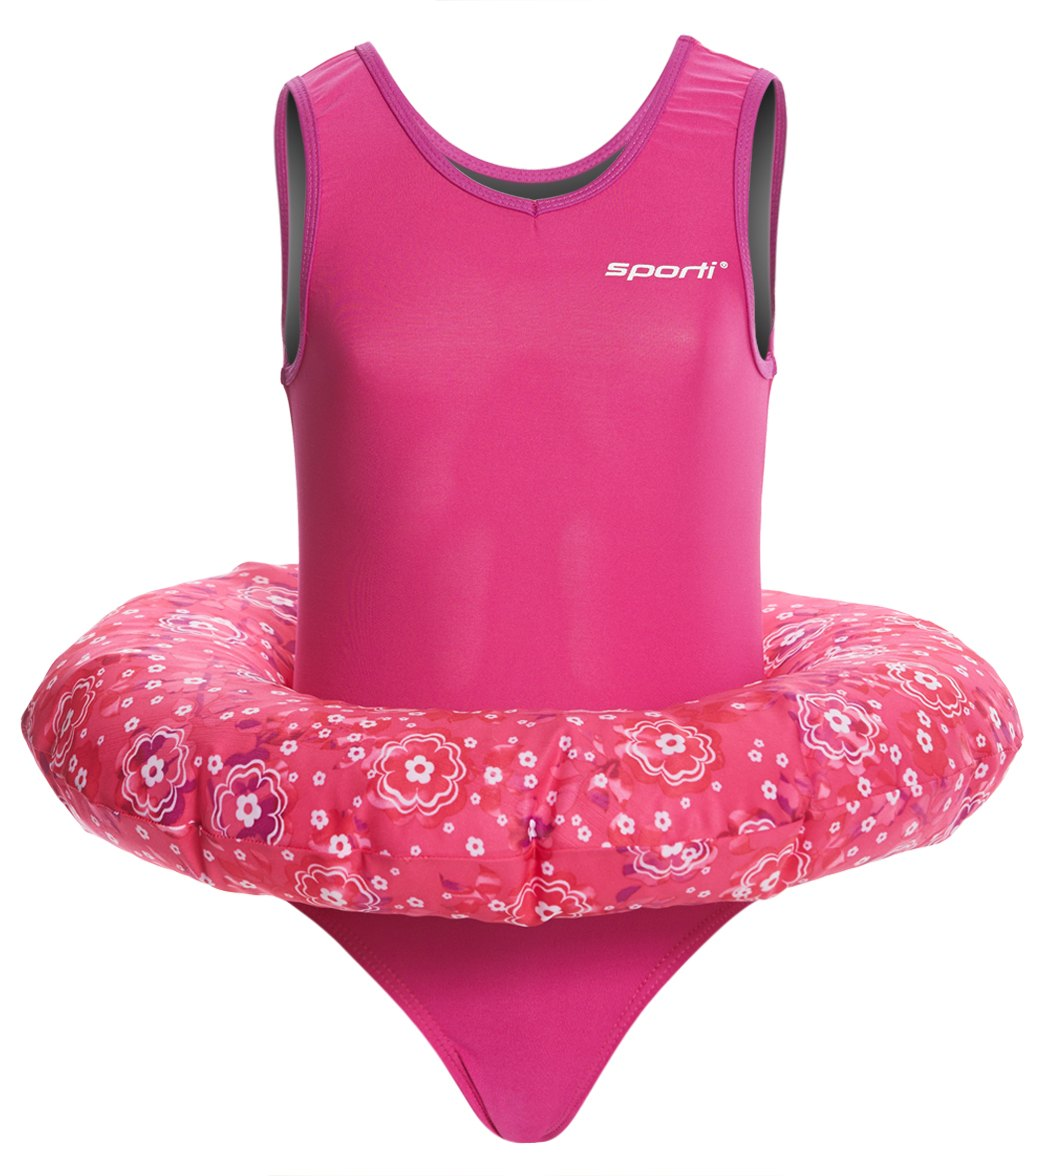 9857239646 Sporti Girls Learn to Swim Flotation Suit at SwimOutlet.com